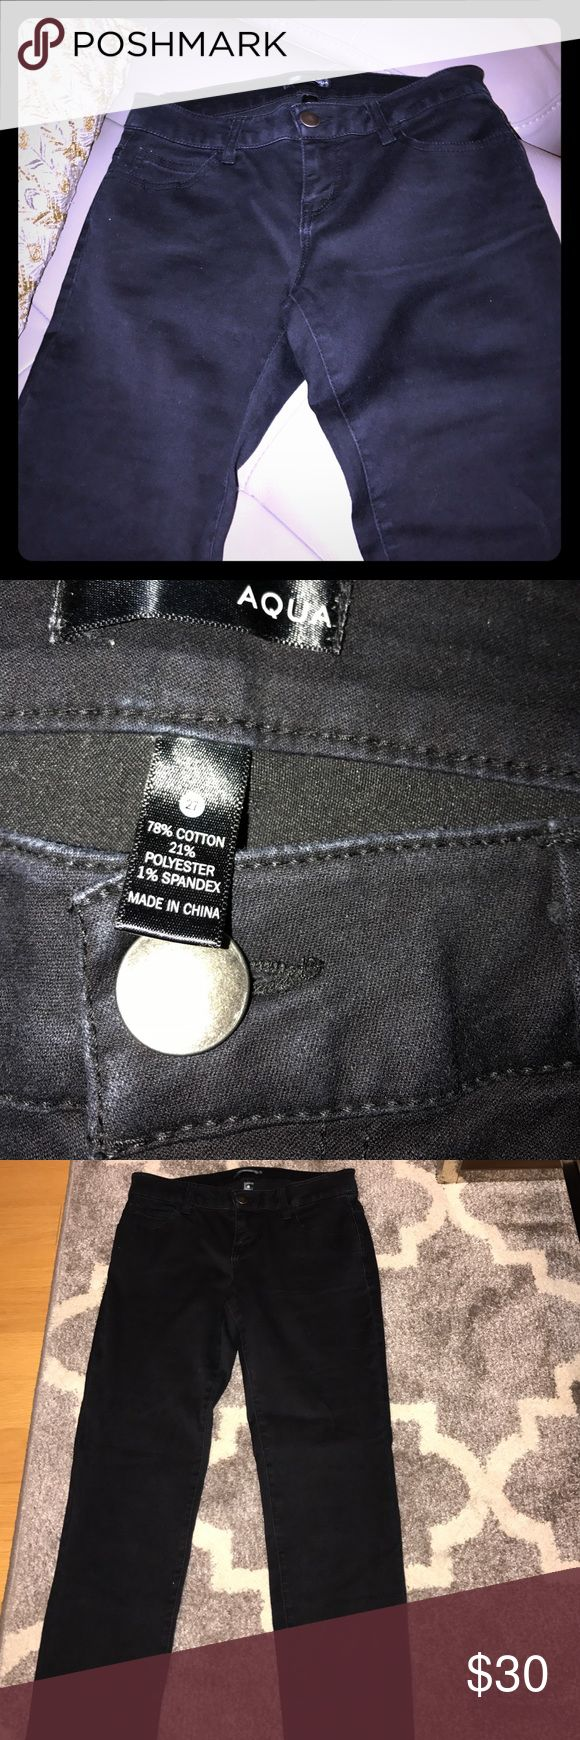 Black Aqua Jeans Great pair of black pants. Barely worn. Tight skinny fit. Can be dressed up or down. Aqua Pants Skinny